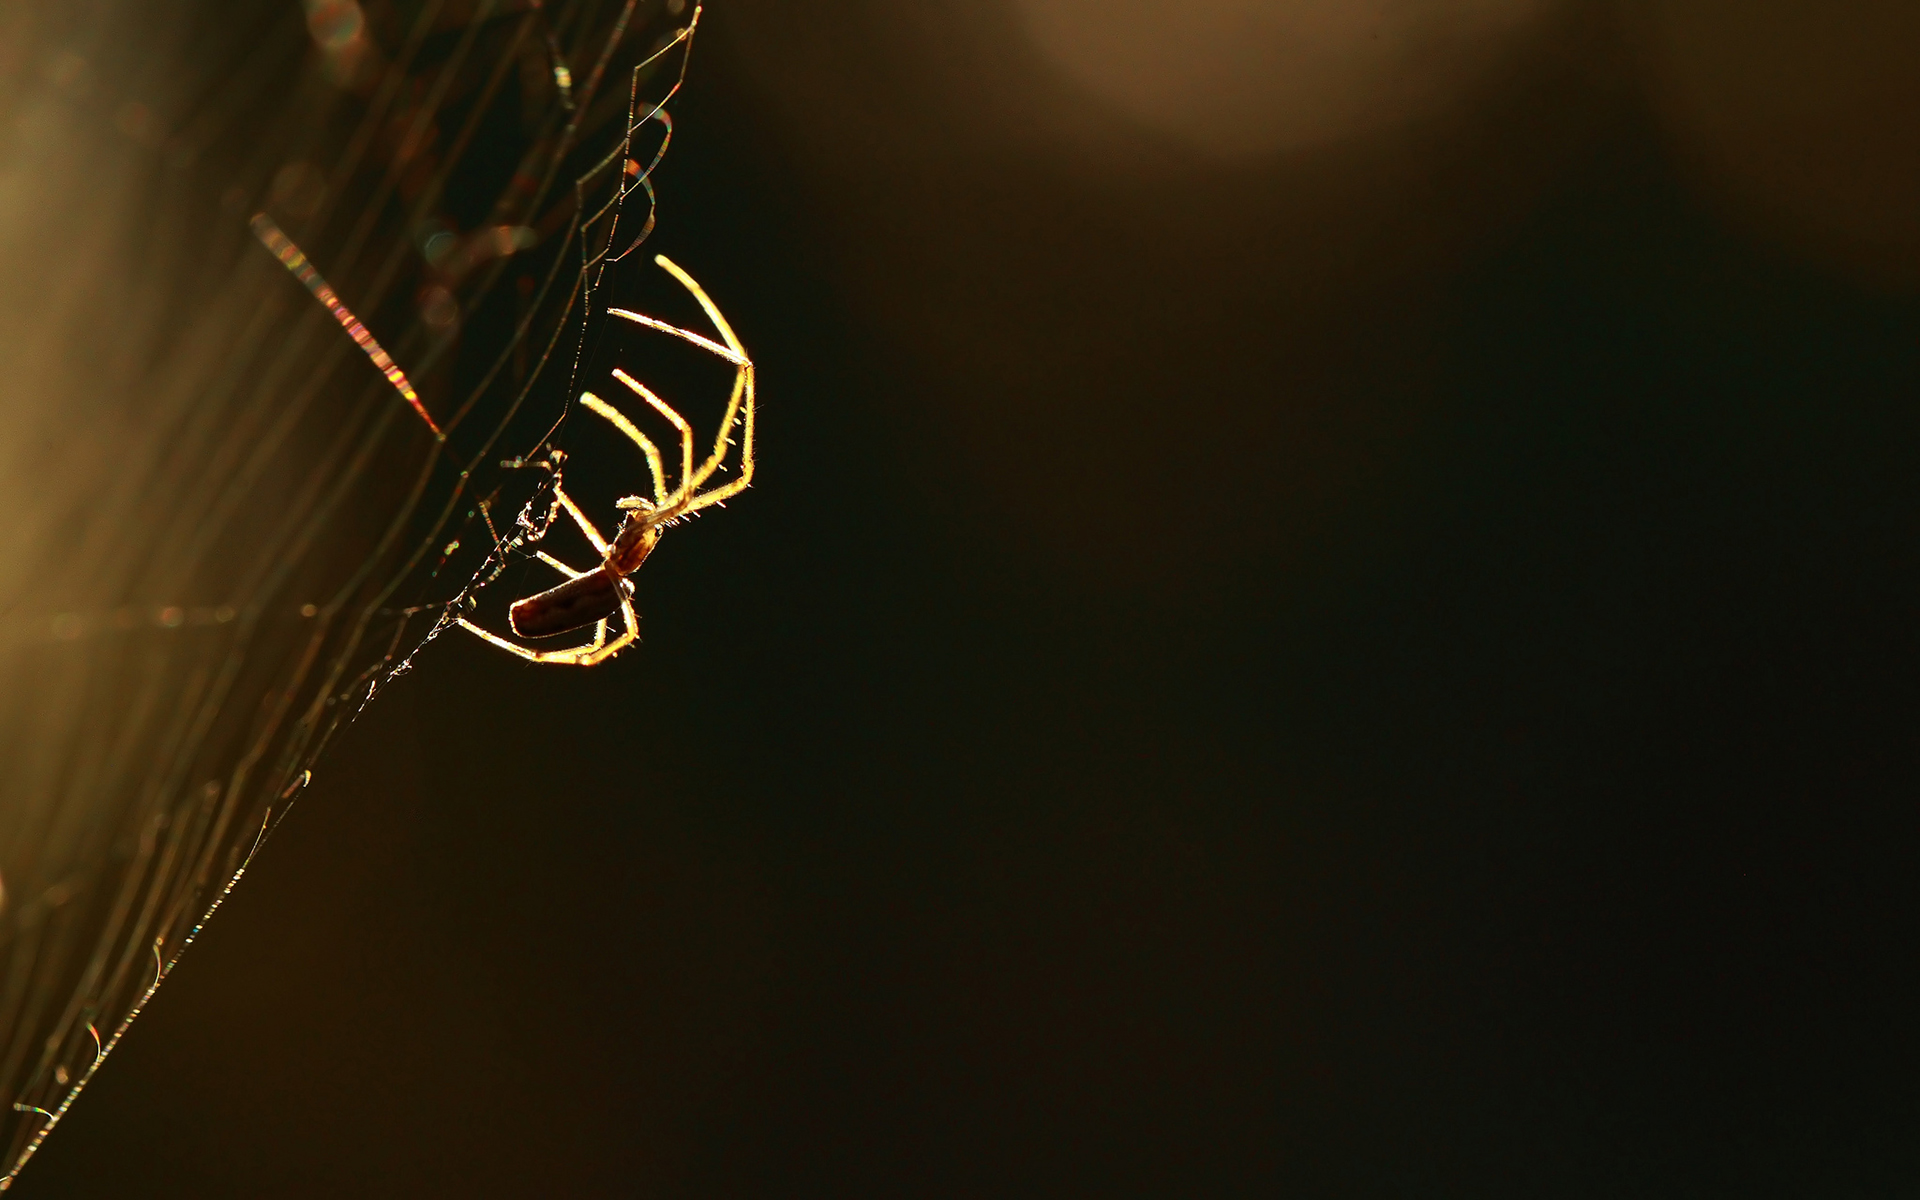 Fantastic Spider Web Wallpaper